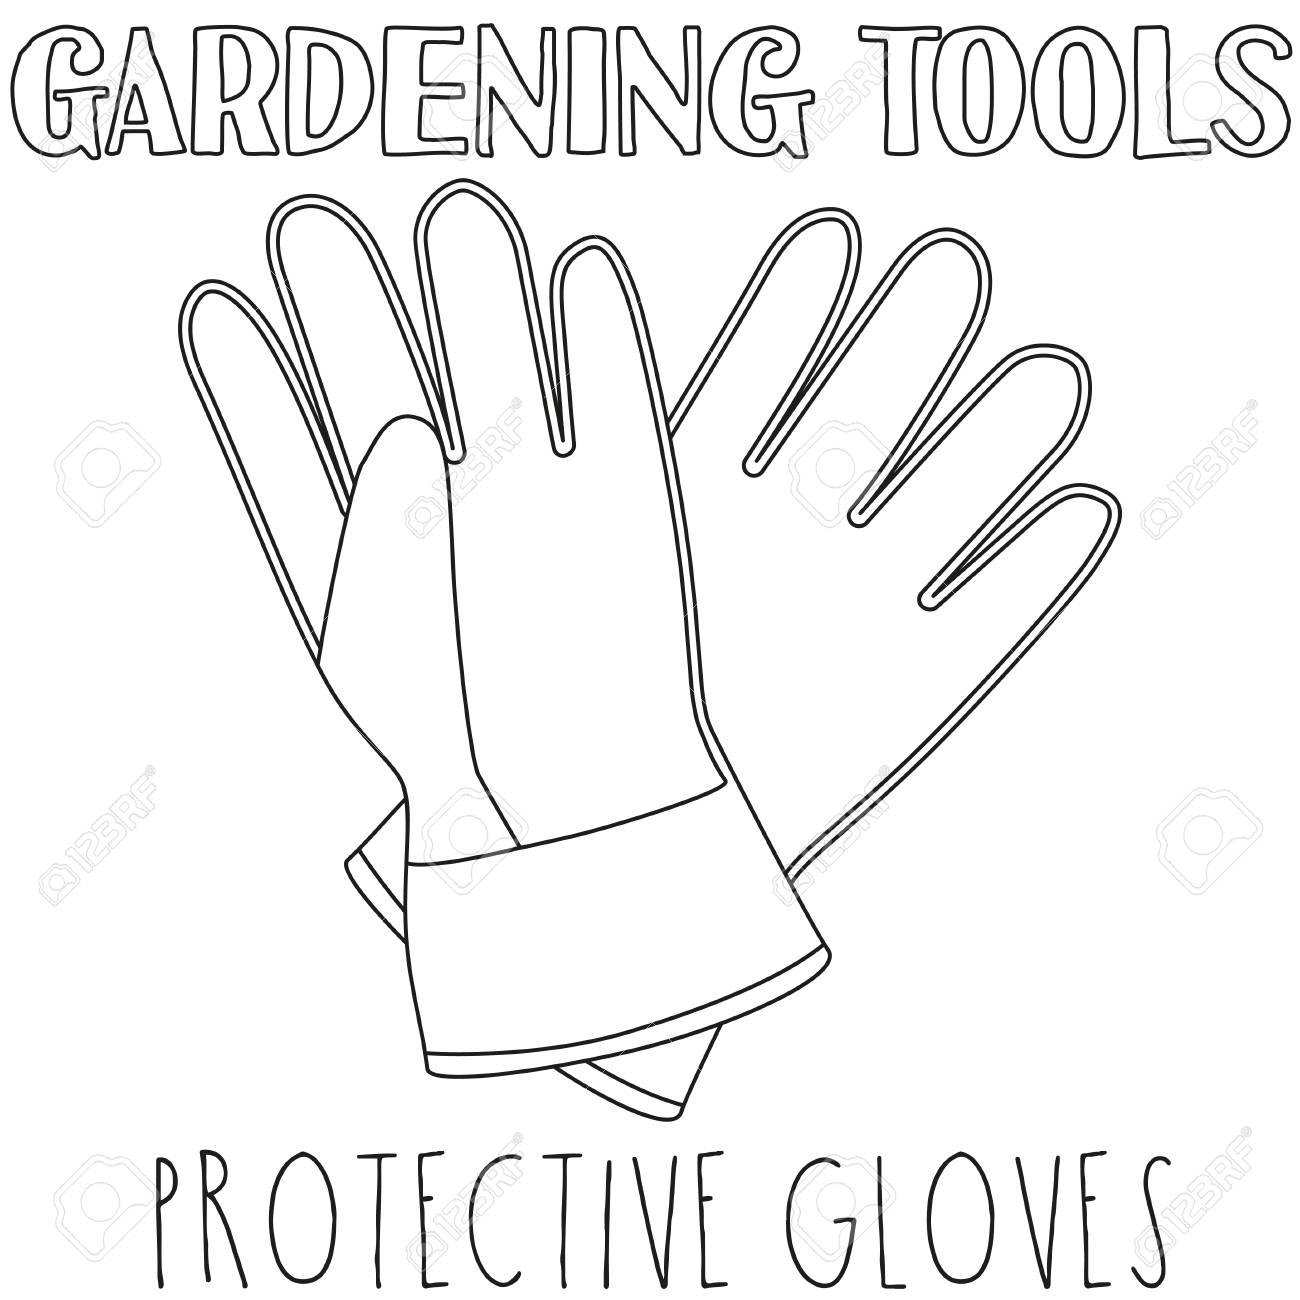 Line Art Black And White Protective Gloves Coloring Book Page For Adults Kids